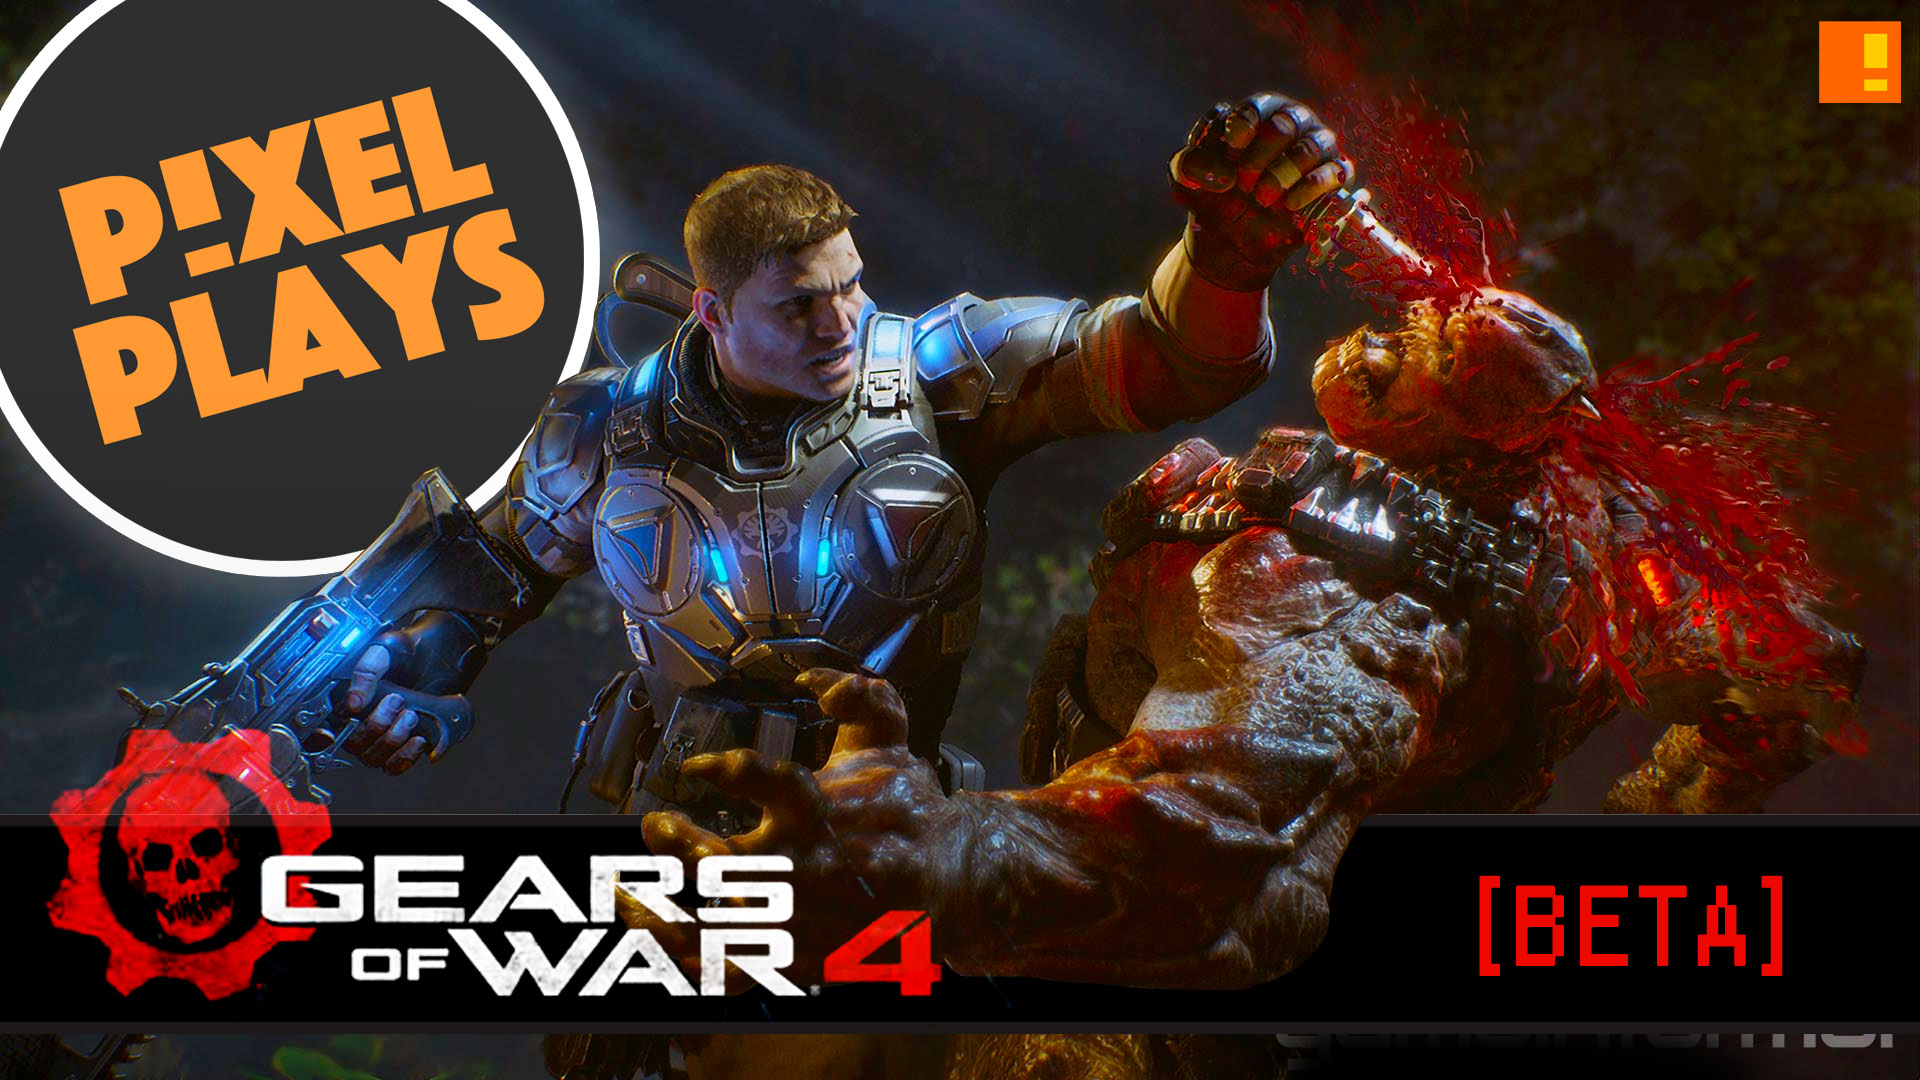 gears of war, beta, gears of war 4 beta, gears of war 4, gears 4, the coalition, epic games, let's play,pixel plays, the action pixel, amer iqbal, enterainment on tap, john rushton,